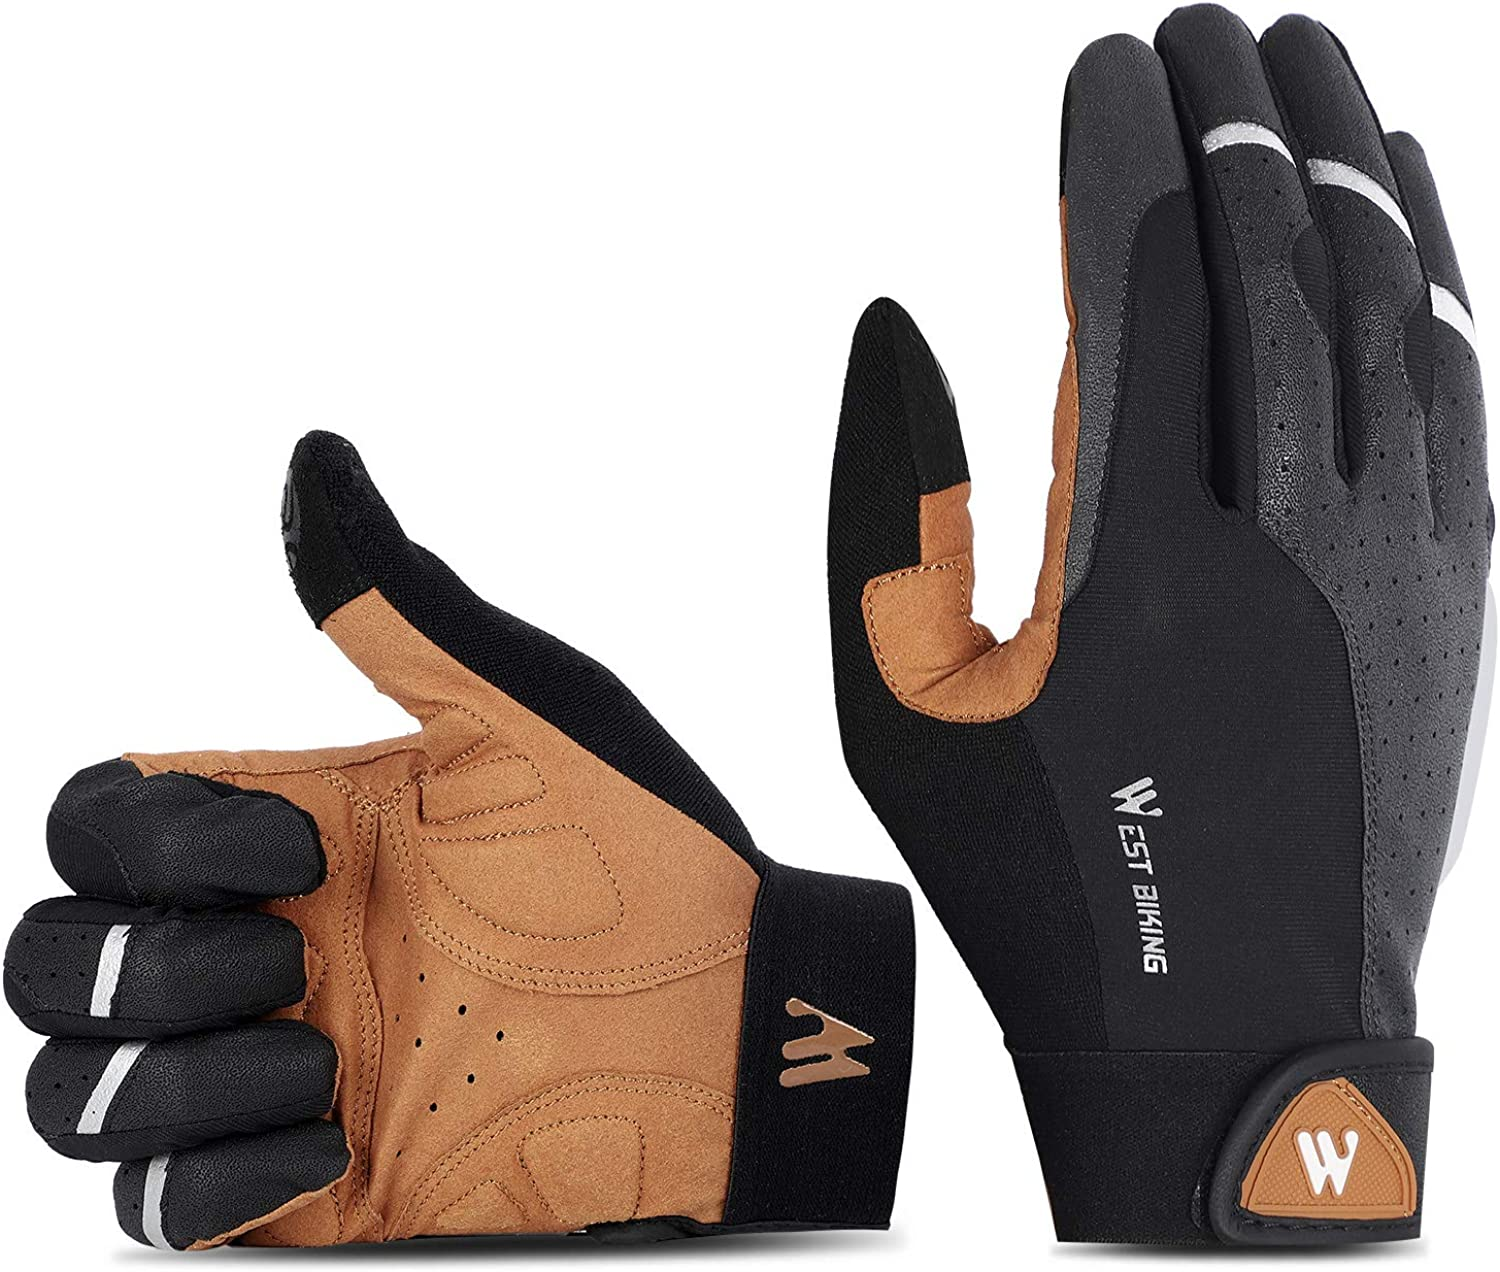 WEST BIKING MTB Cycling Motorcycle Anti-slip Breathable Outdoor Bicycle Gloves